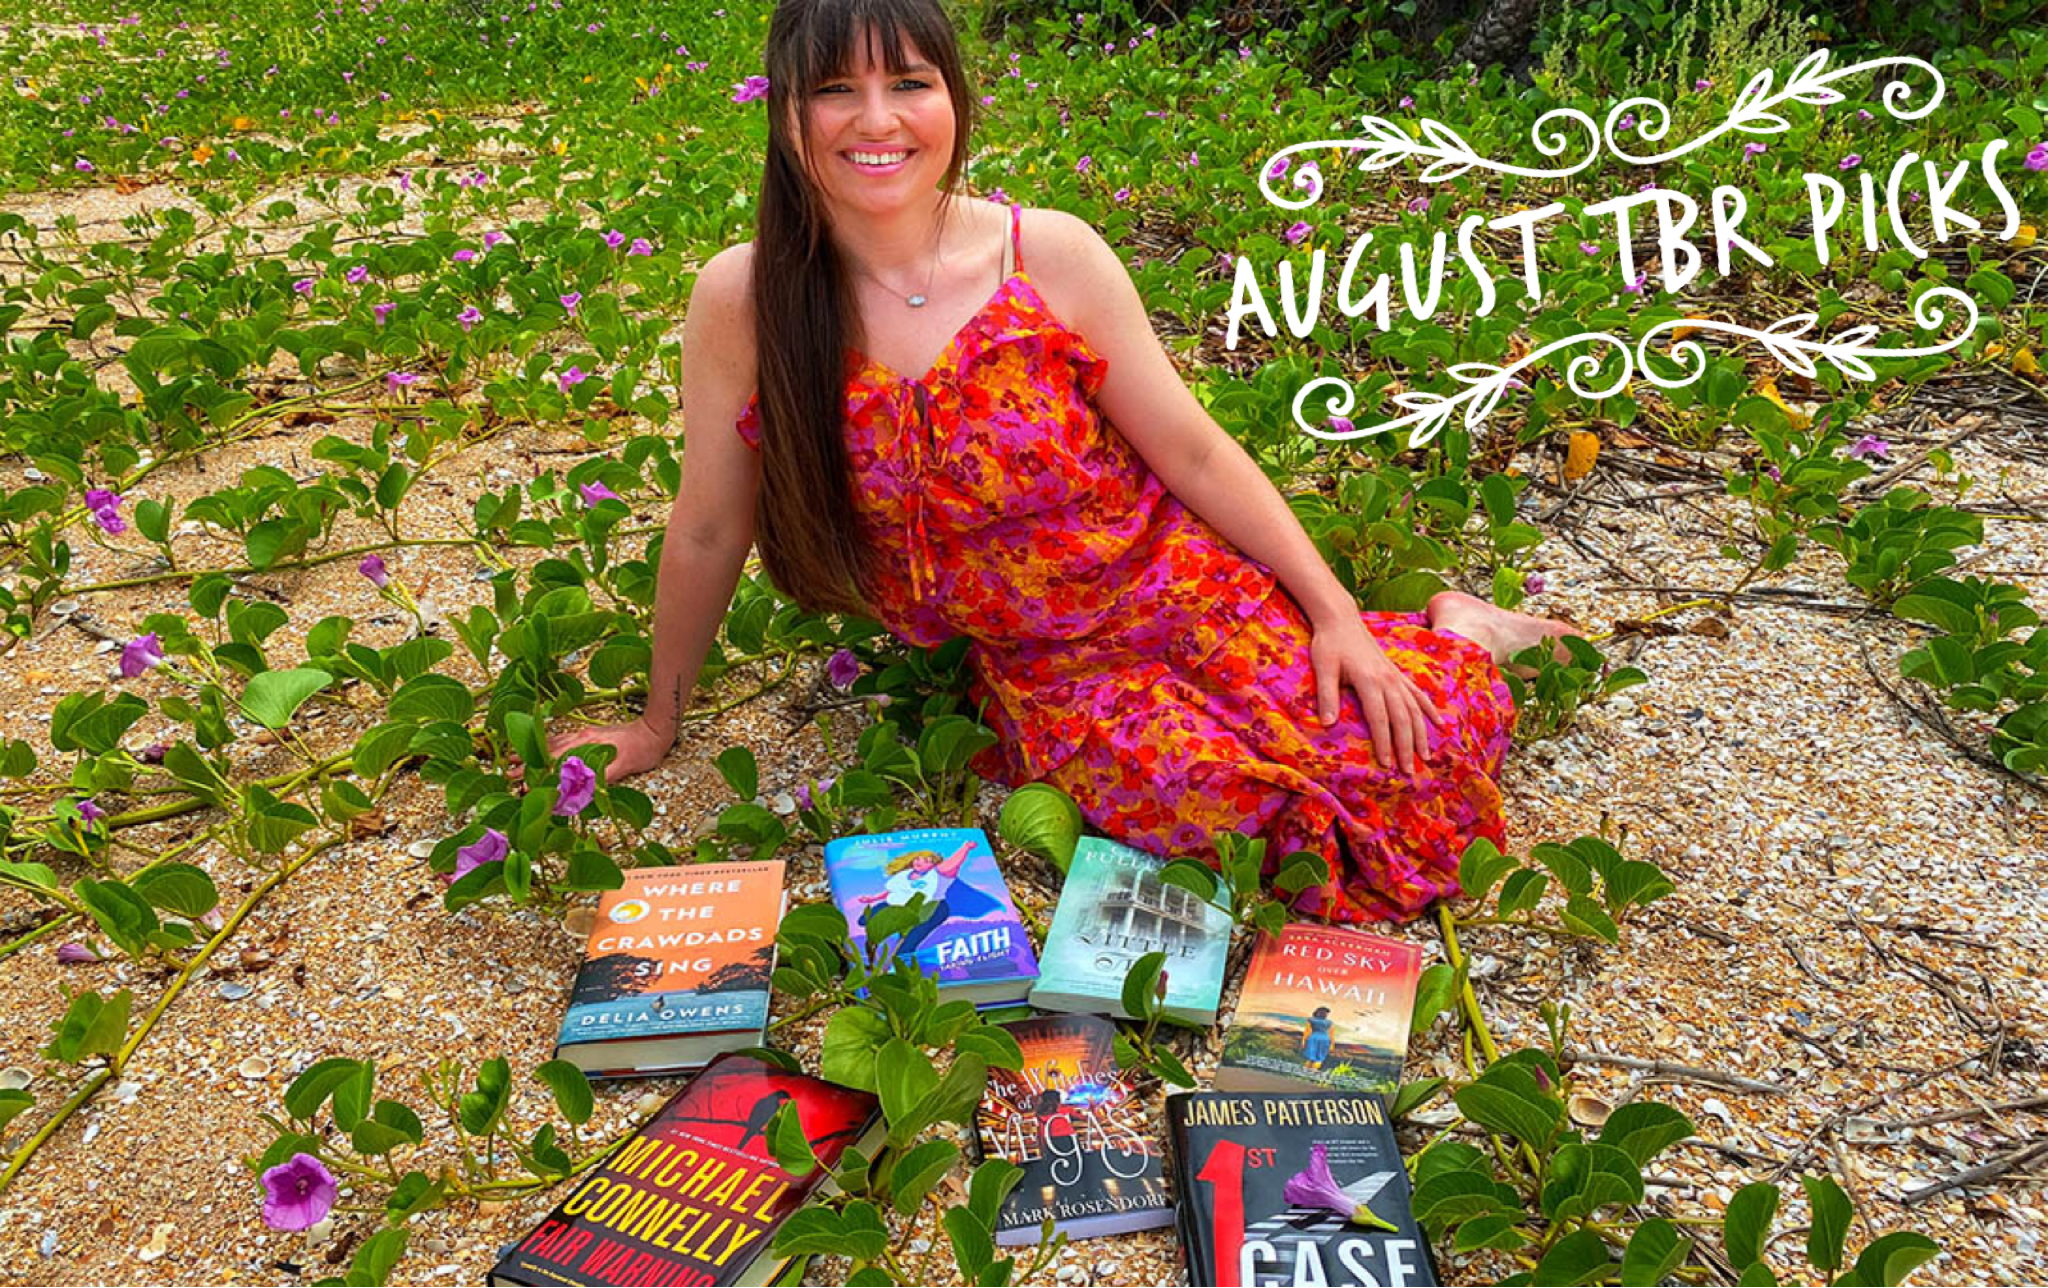 HeyitsCarlyRae August TBR Picks